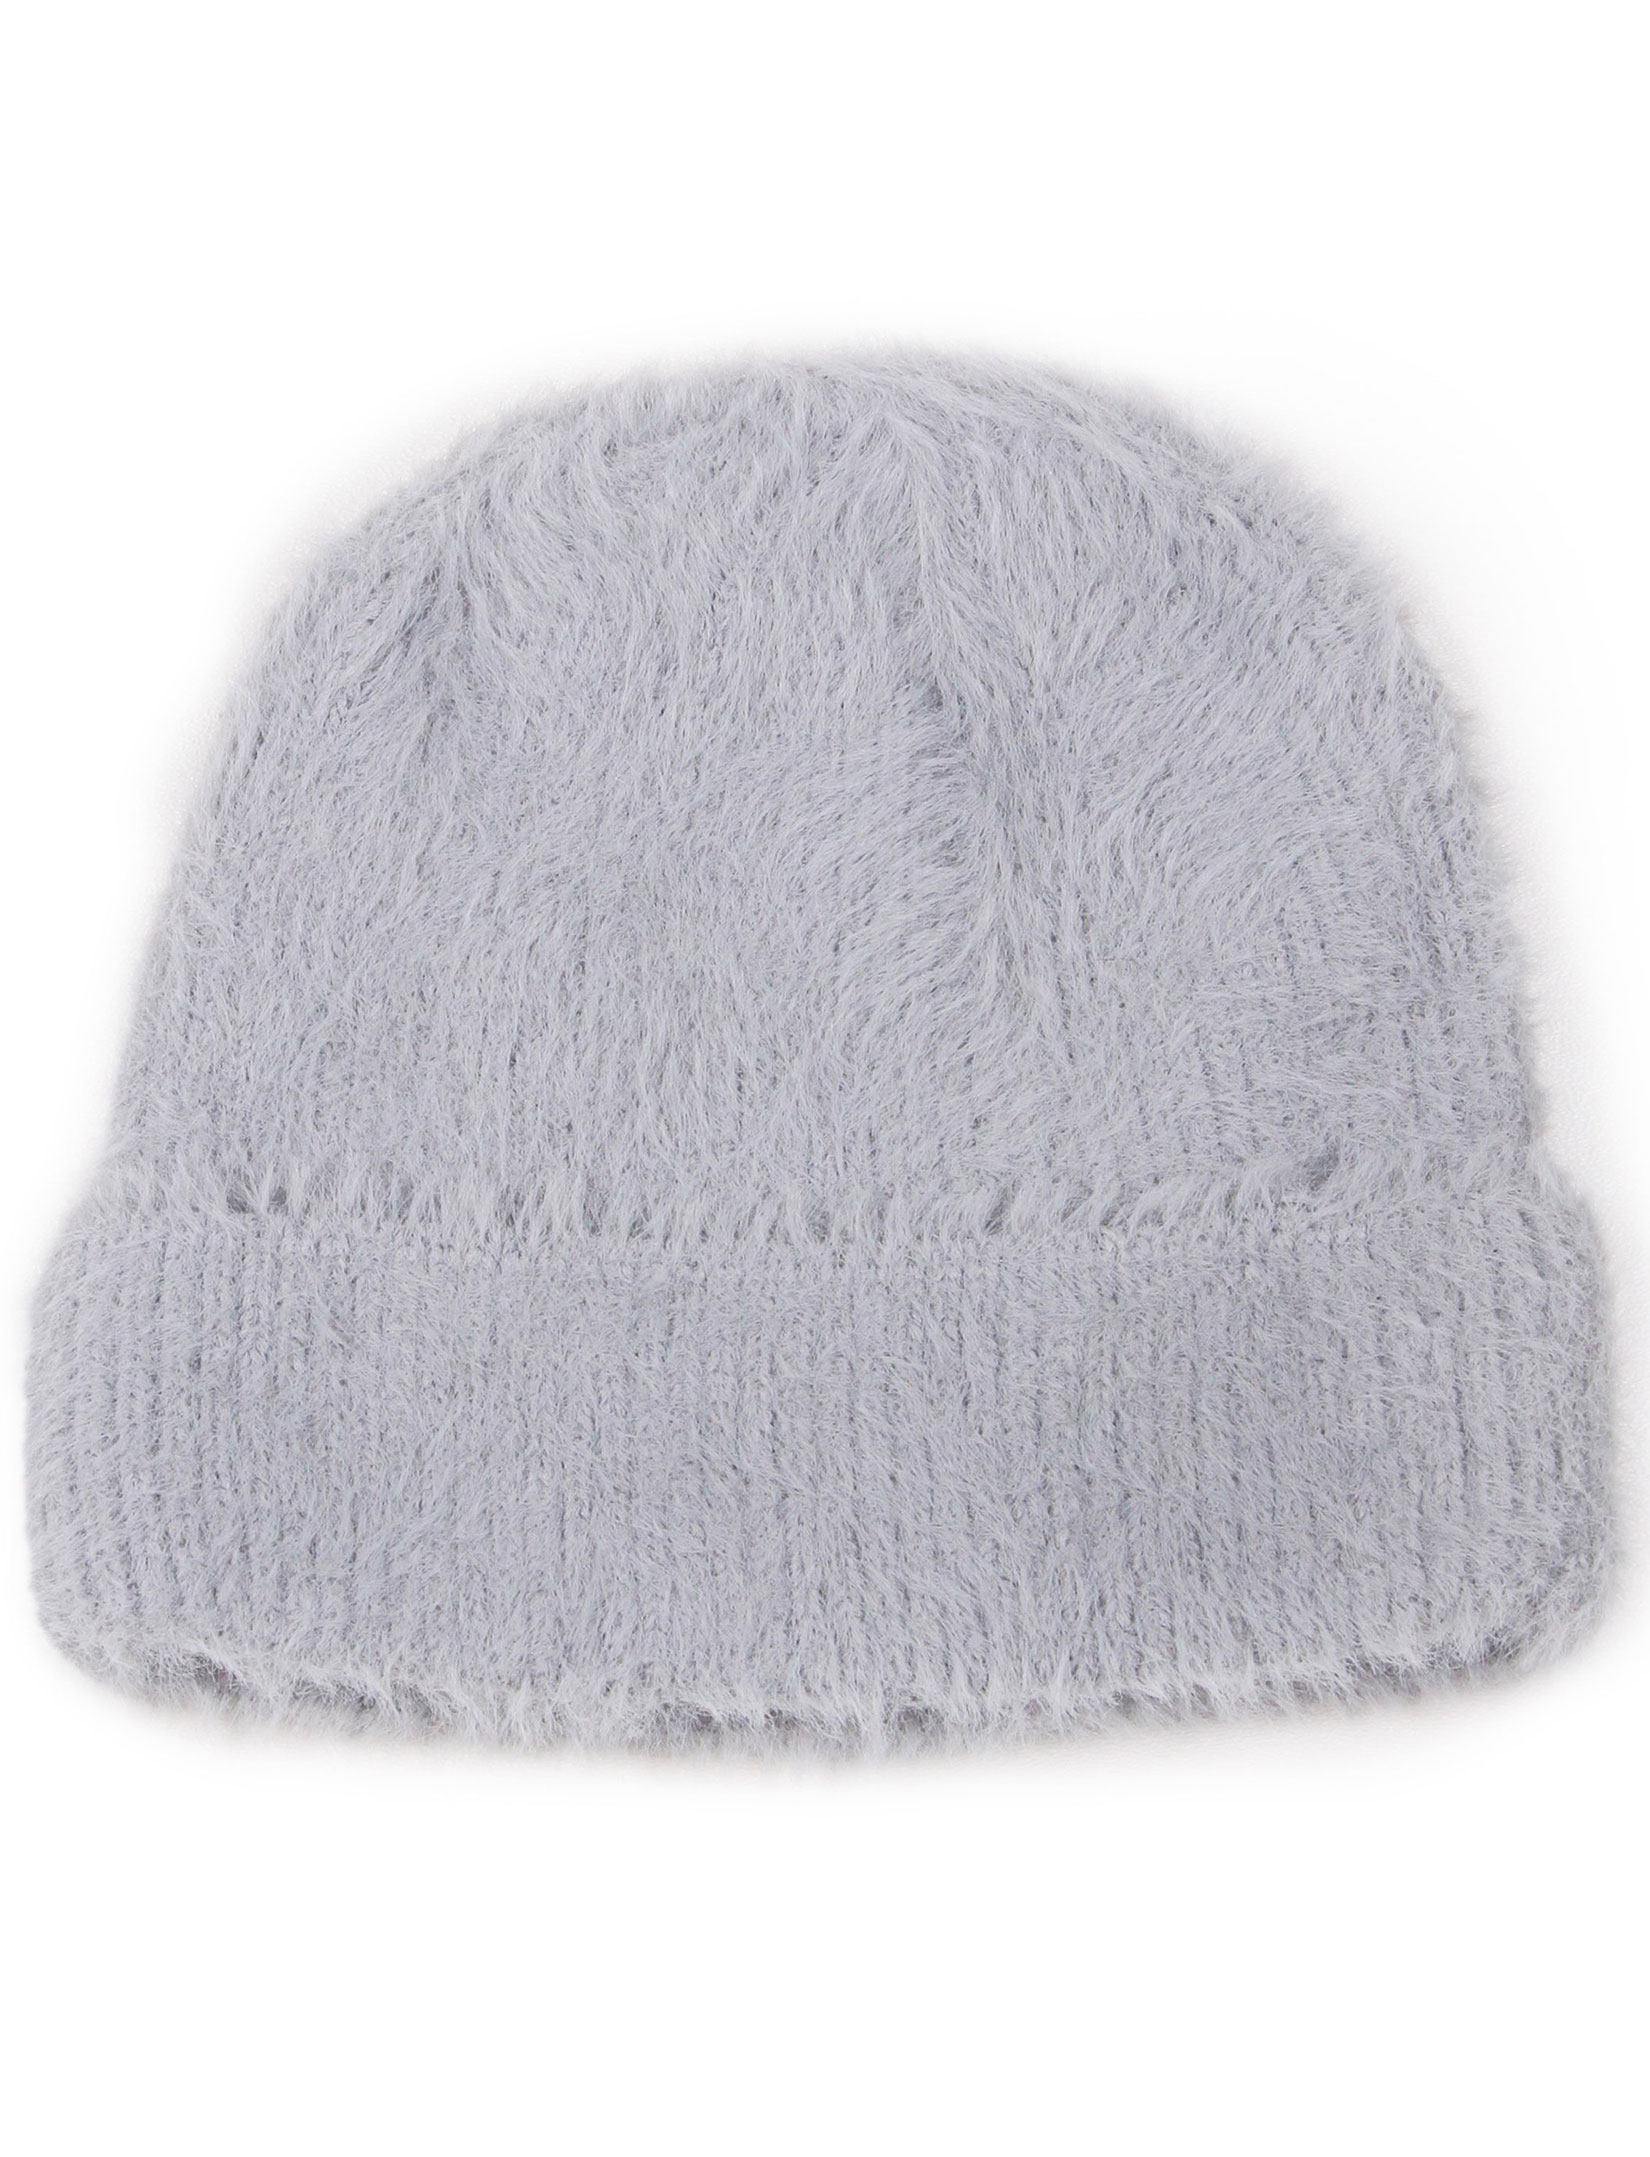 wholesale Knit Beanie - Furry Knit 9516